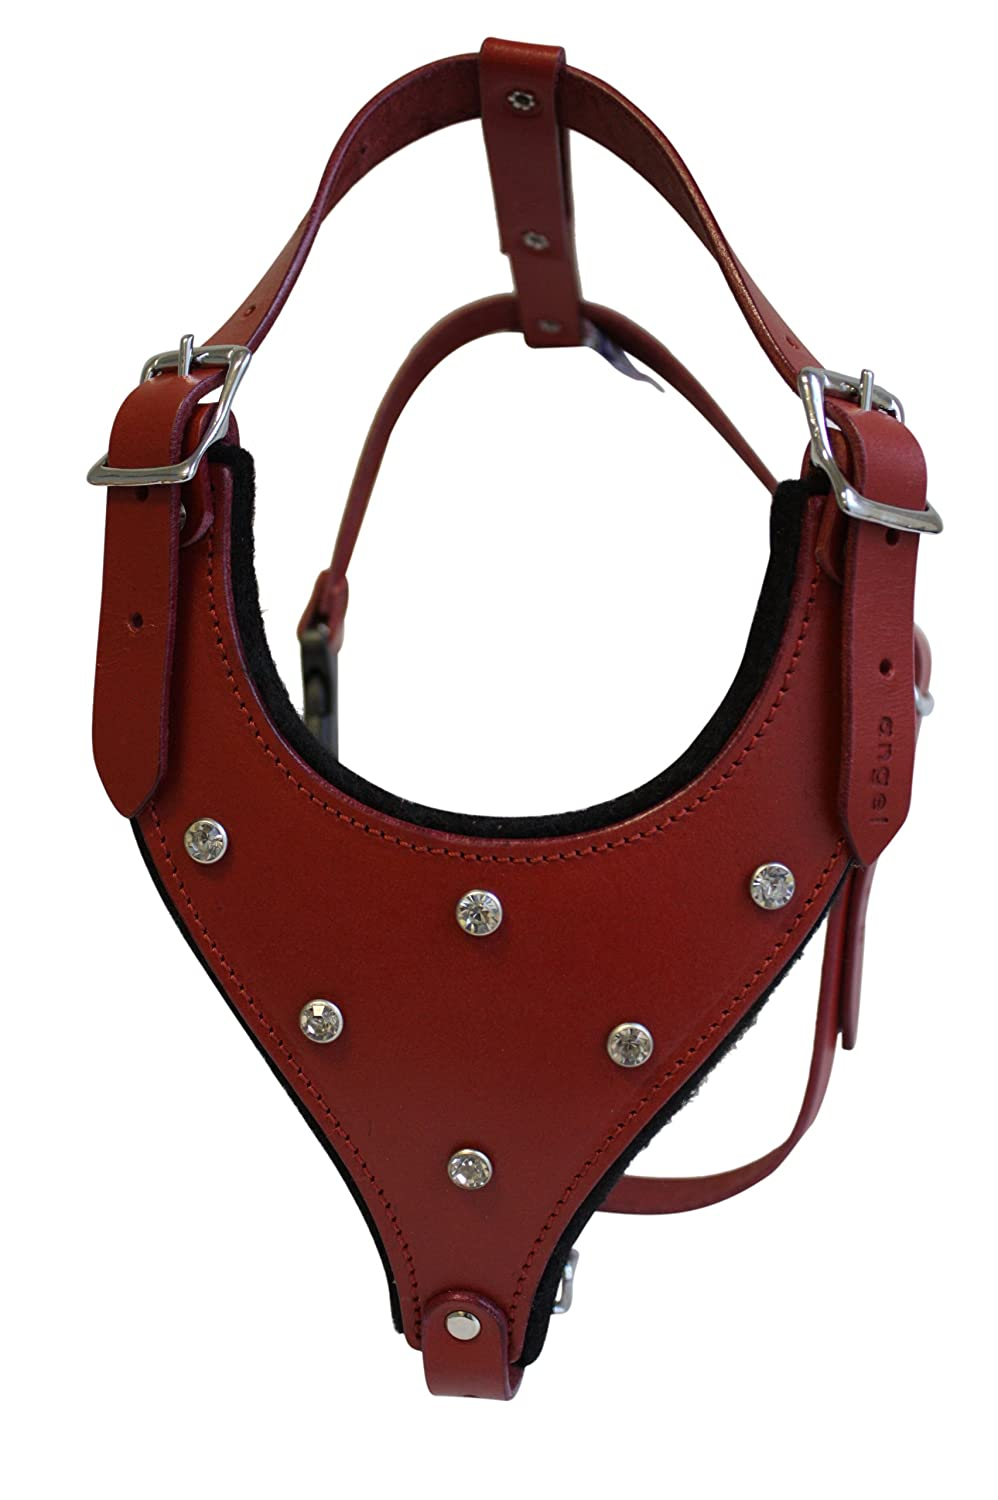 Valentine Red m Valentine Red m Leather Rhinestones Bling Dog Harness, Med, Red, 100% Genuine silverinean Leather (Malibu) for Med. Breeds. Neck  10.5  20.5 . Chest  20 -27